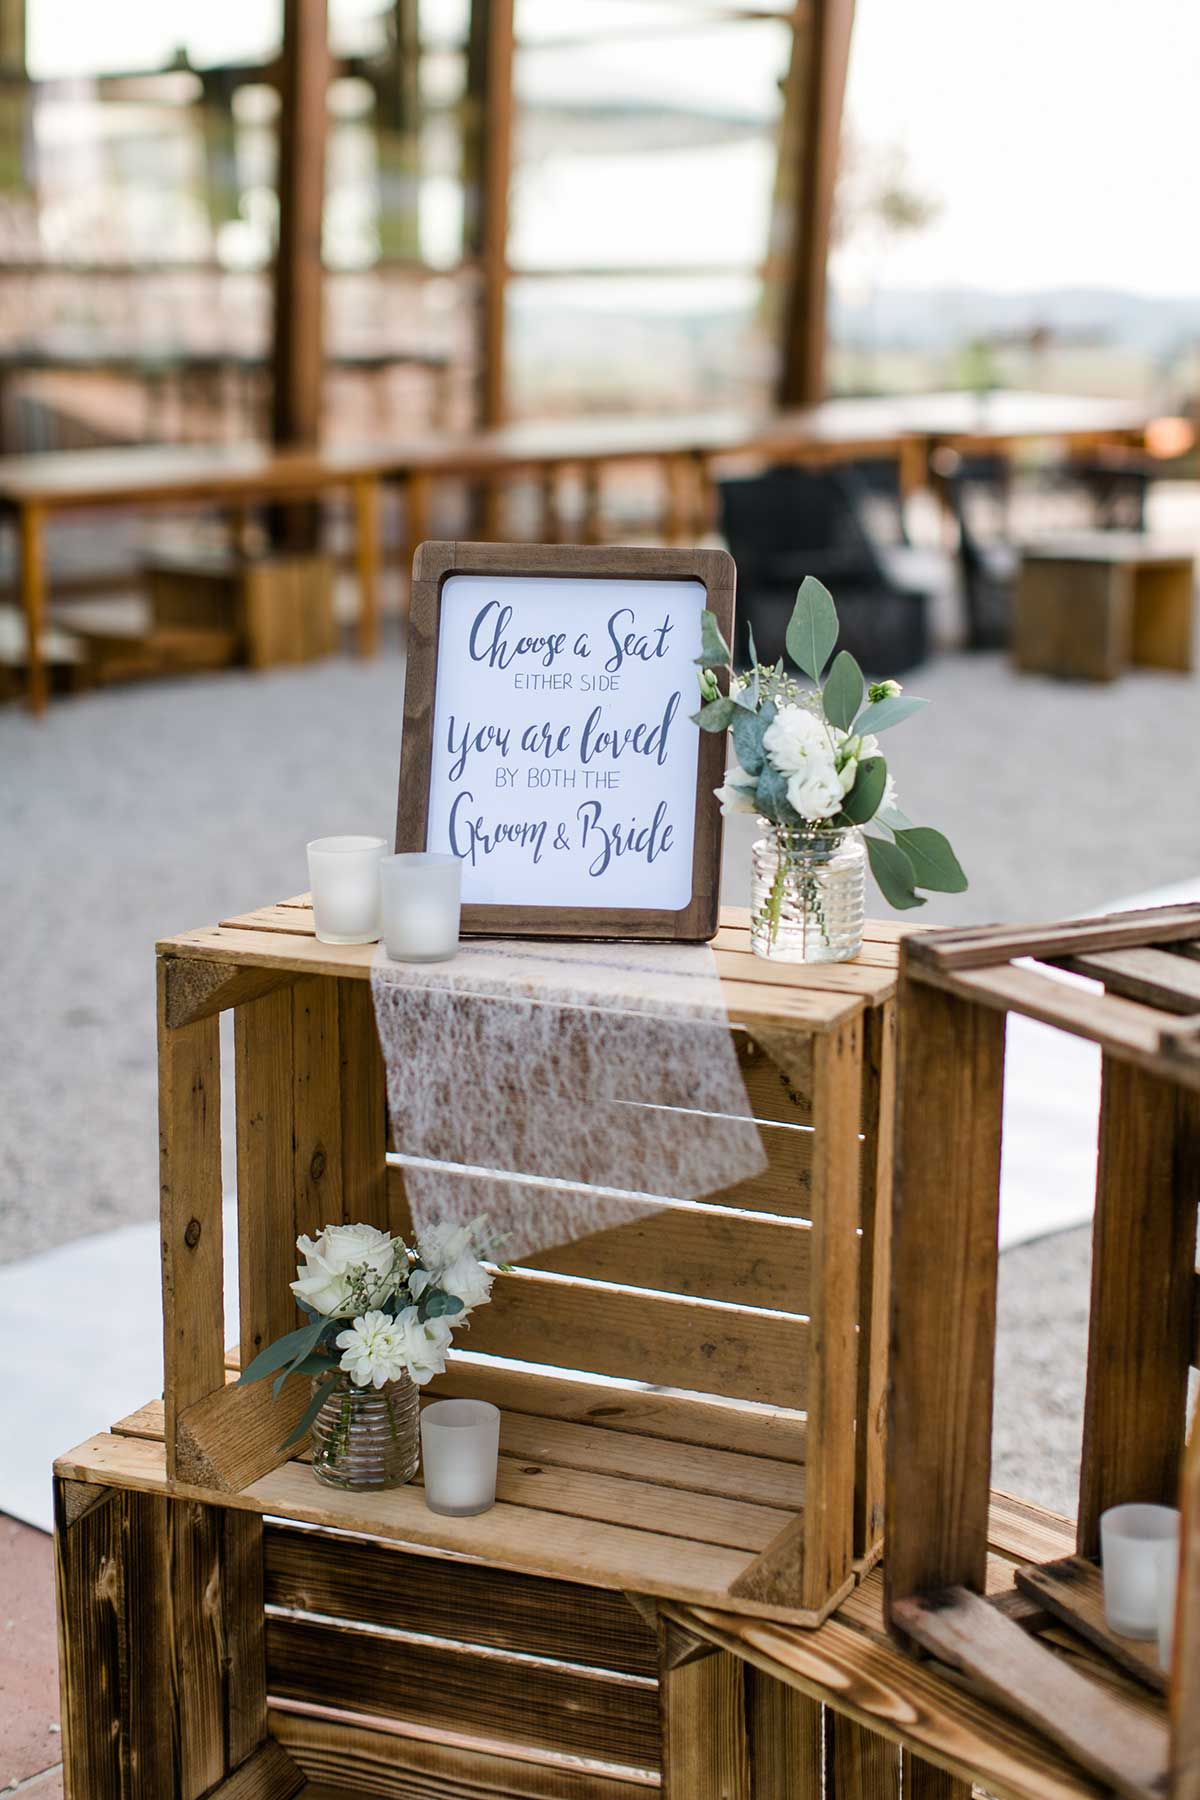 Choose a Seat eiather side, you are loves by both the Groom and Bride Schild